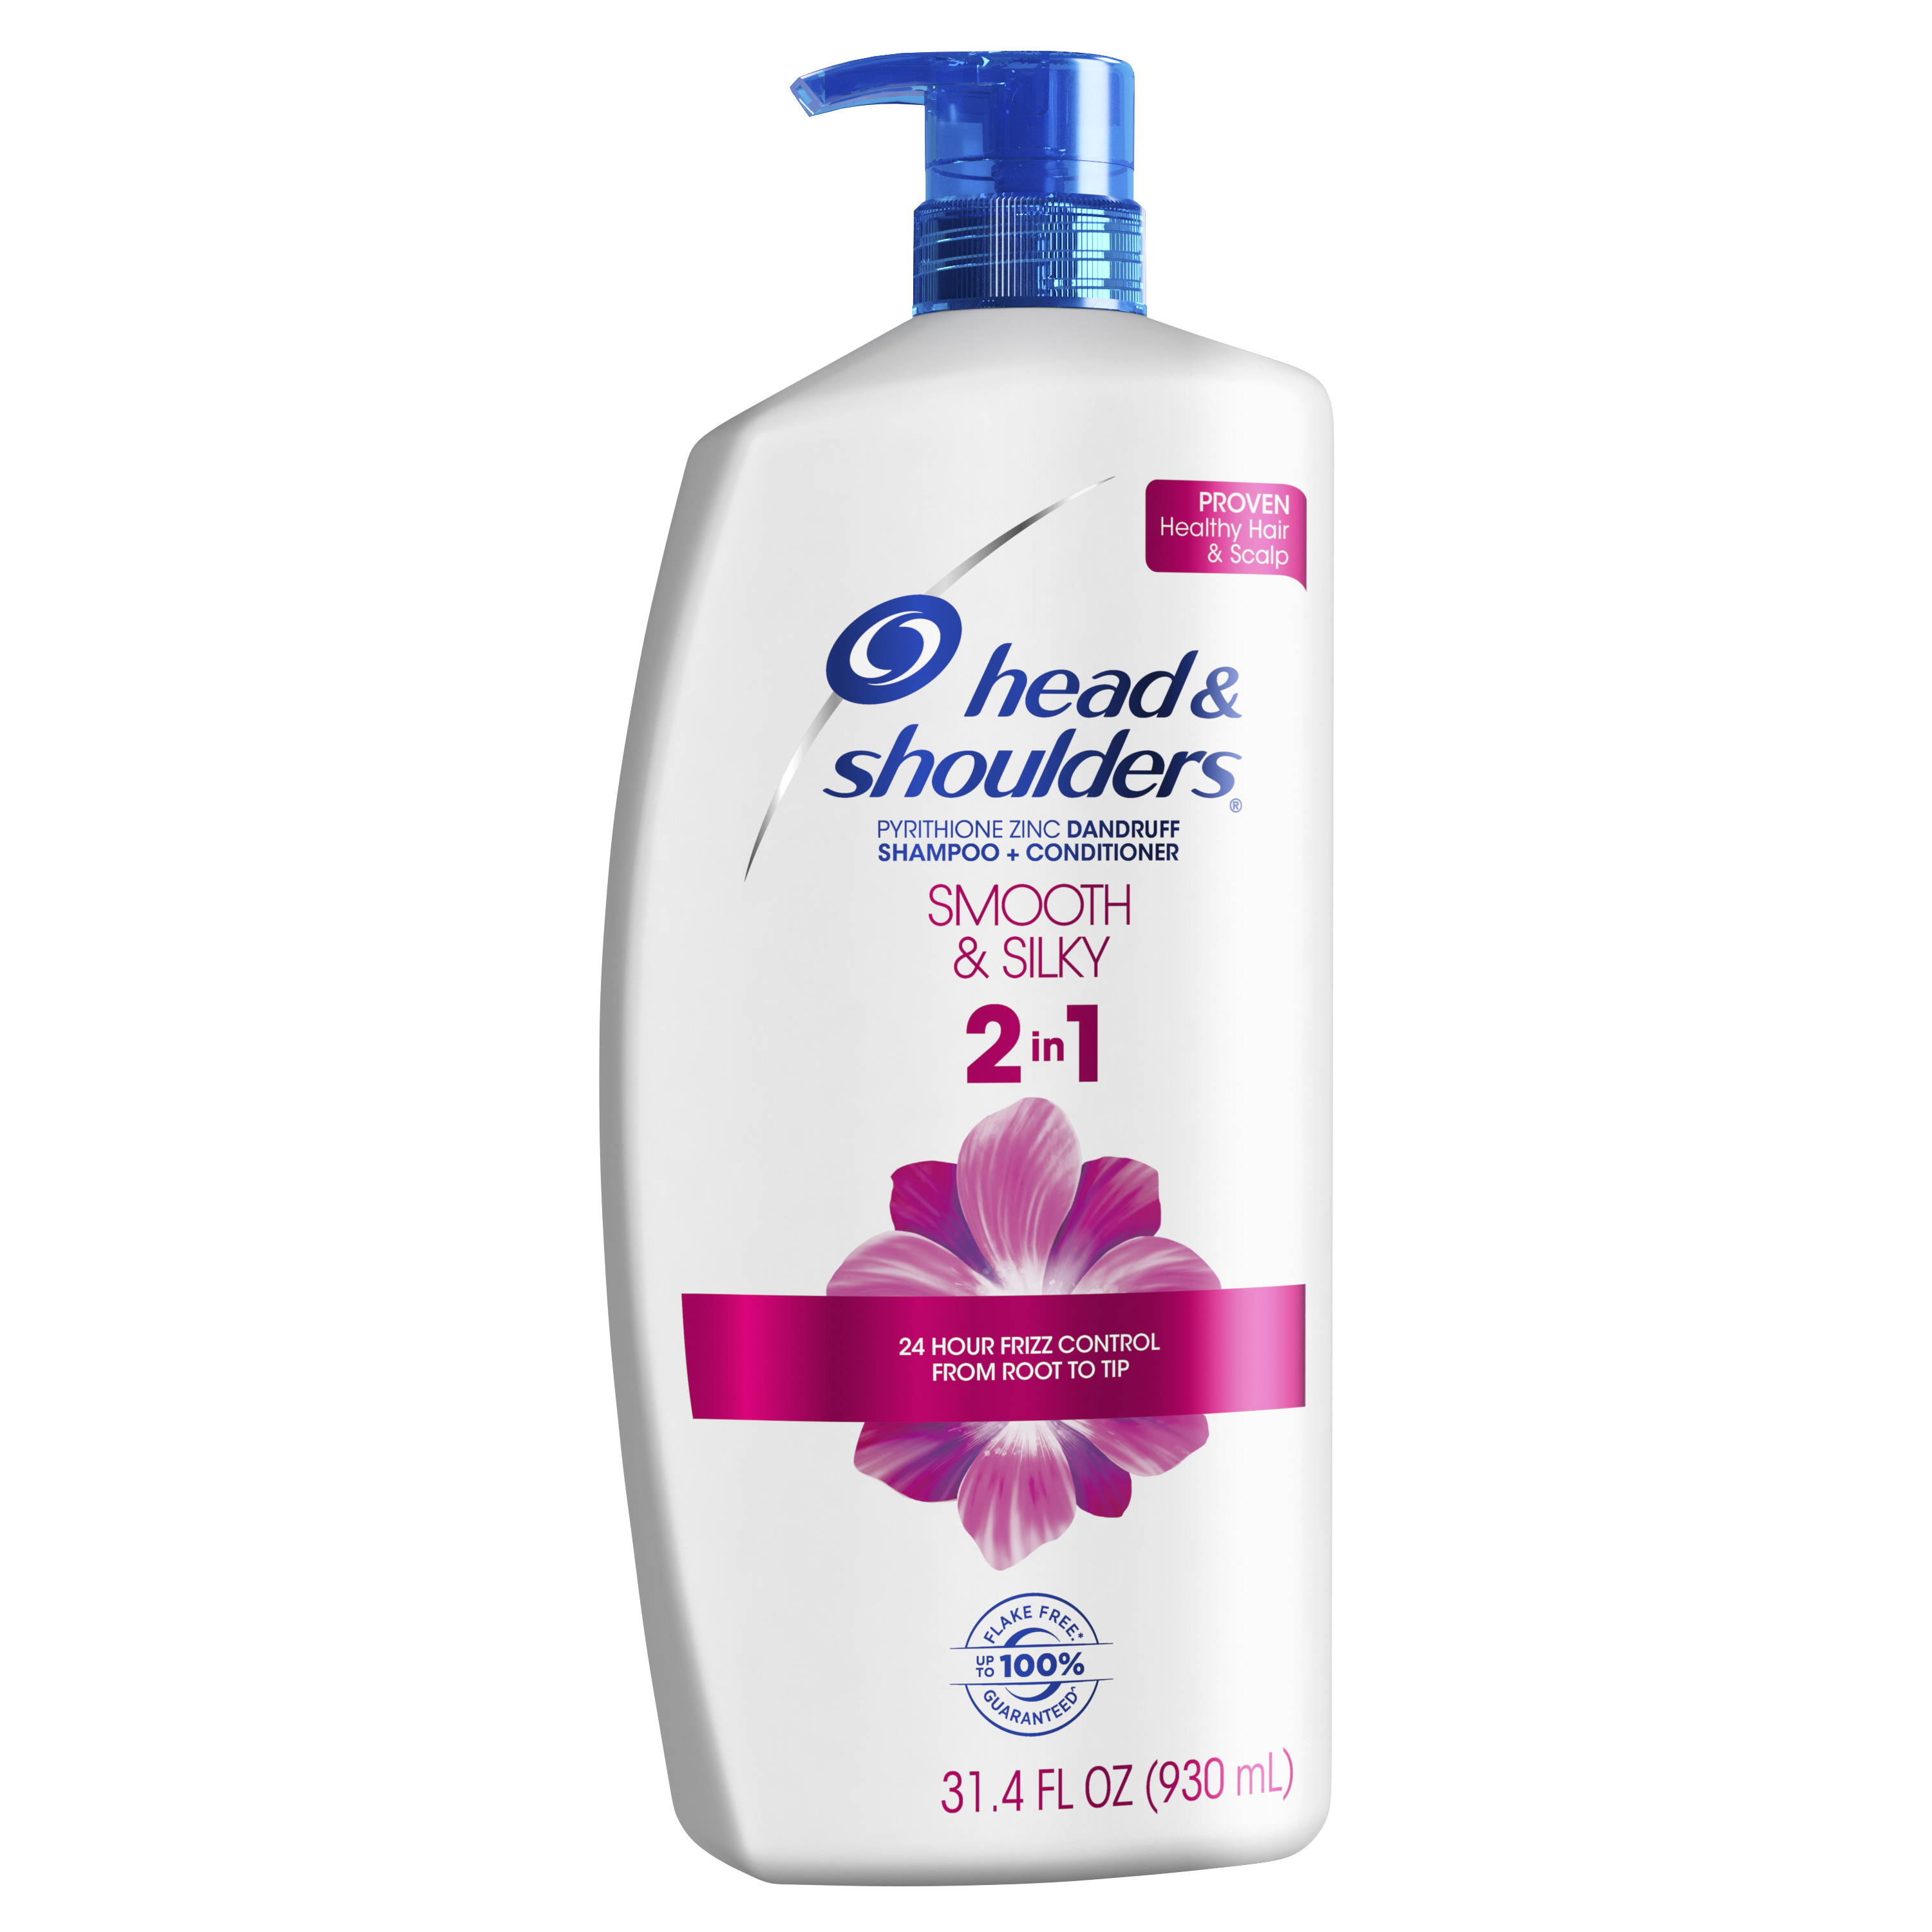 Head and Shoulders Smooth & Silky 2in1 Dandruff Shampoo and Conditioner, 31.4 fl oz